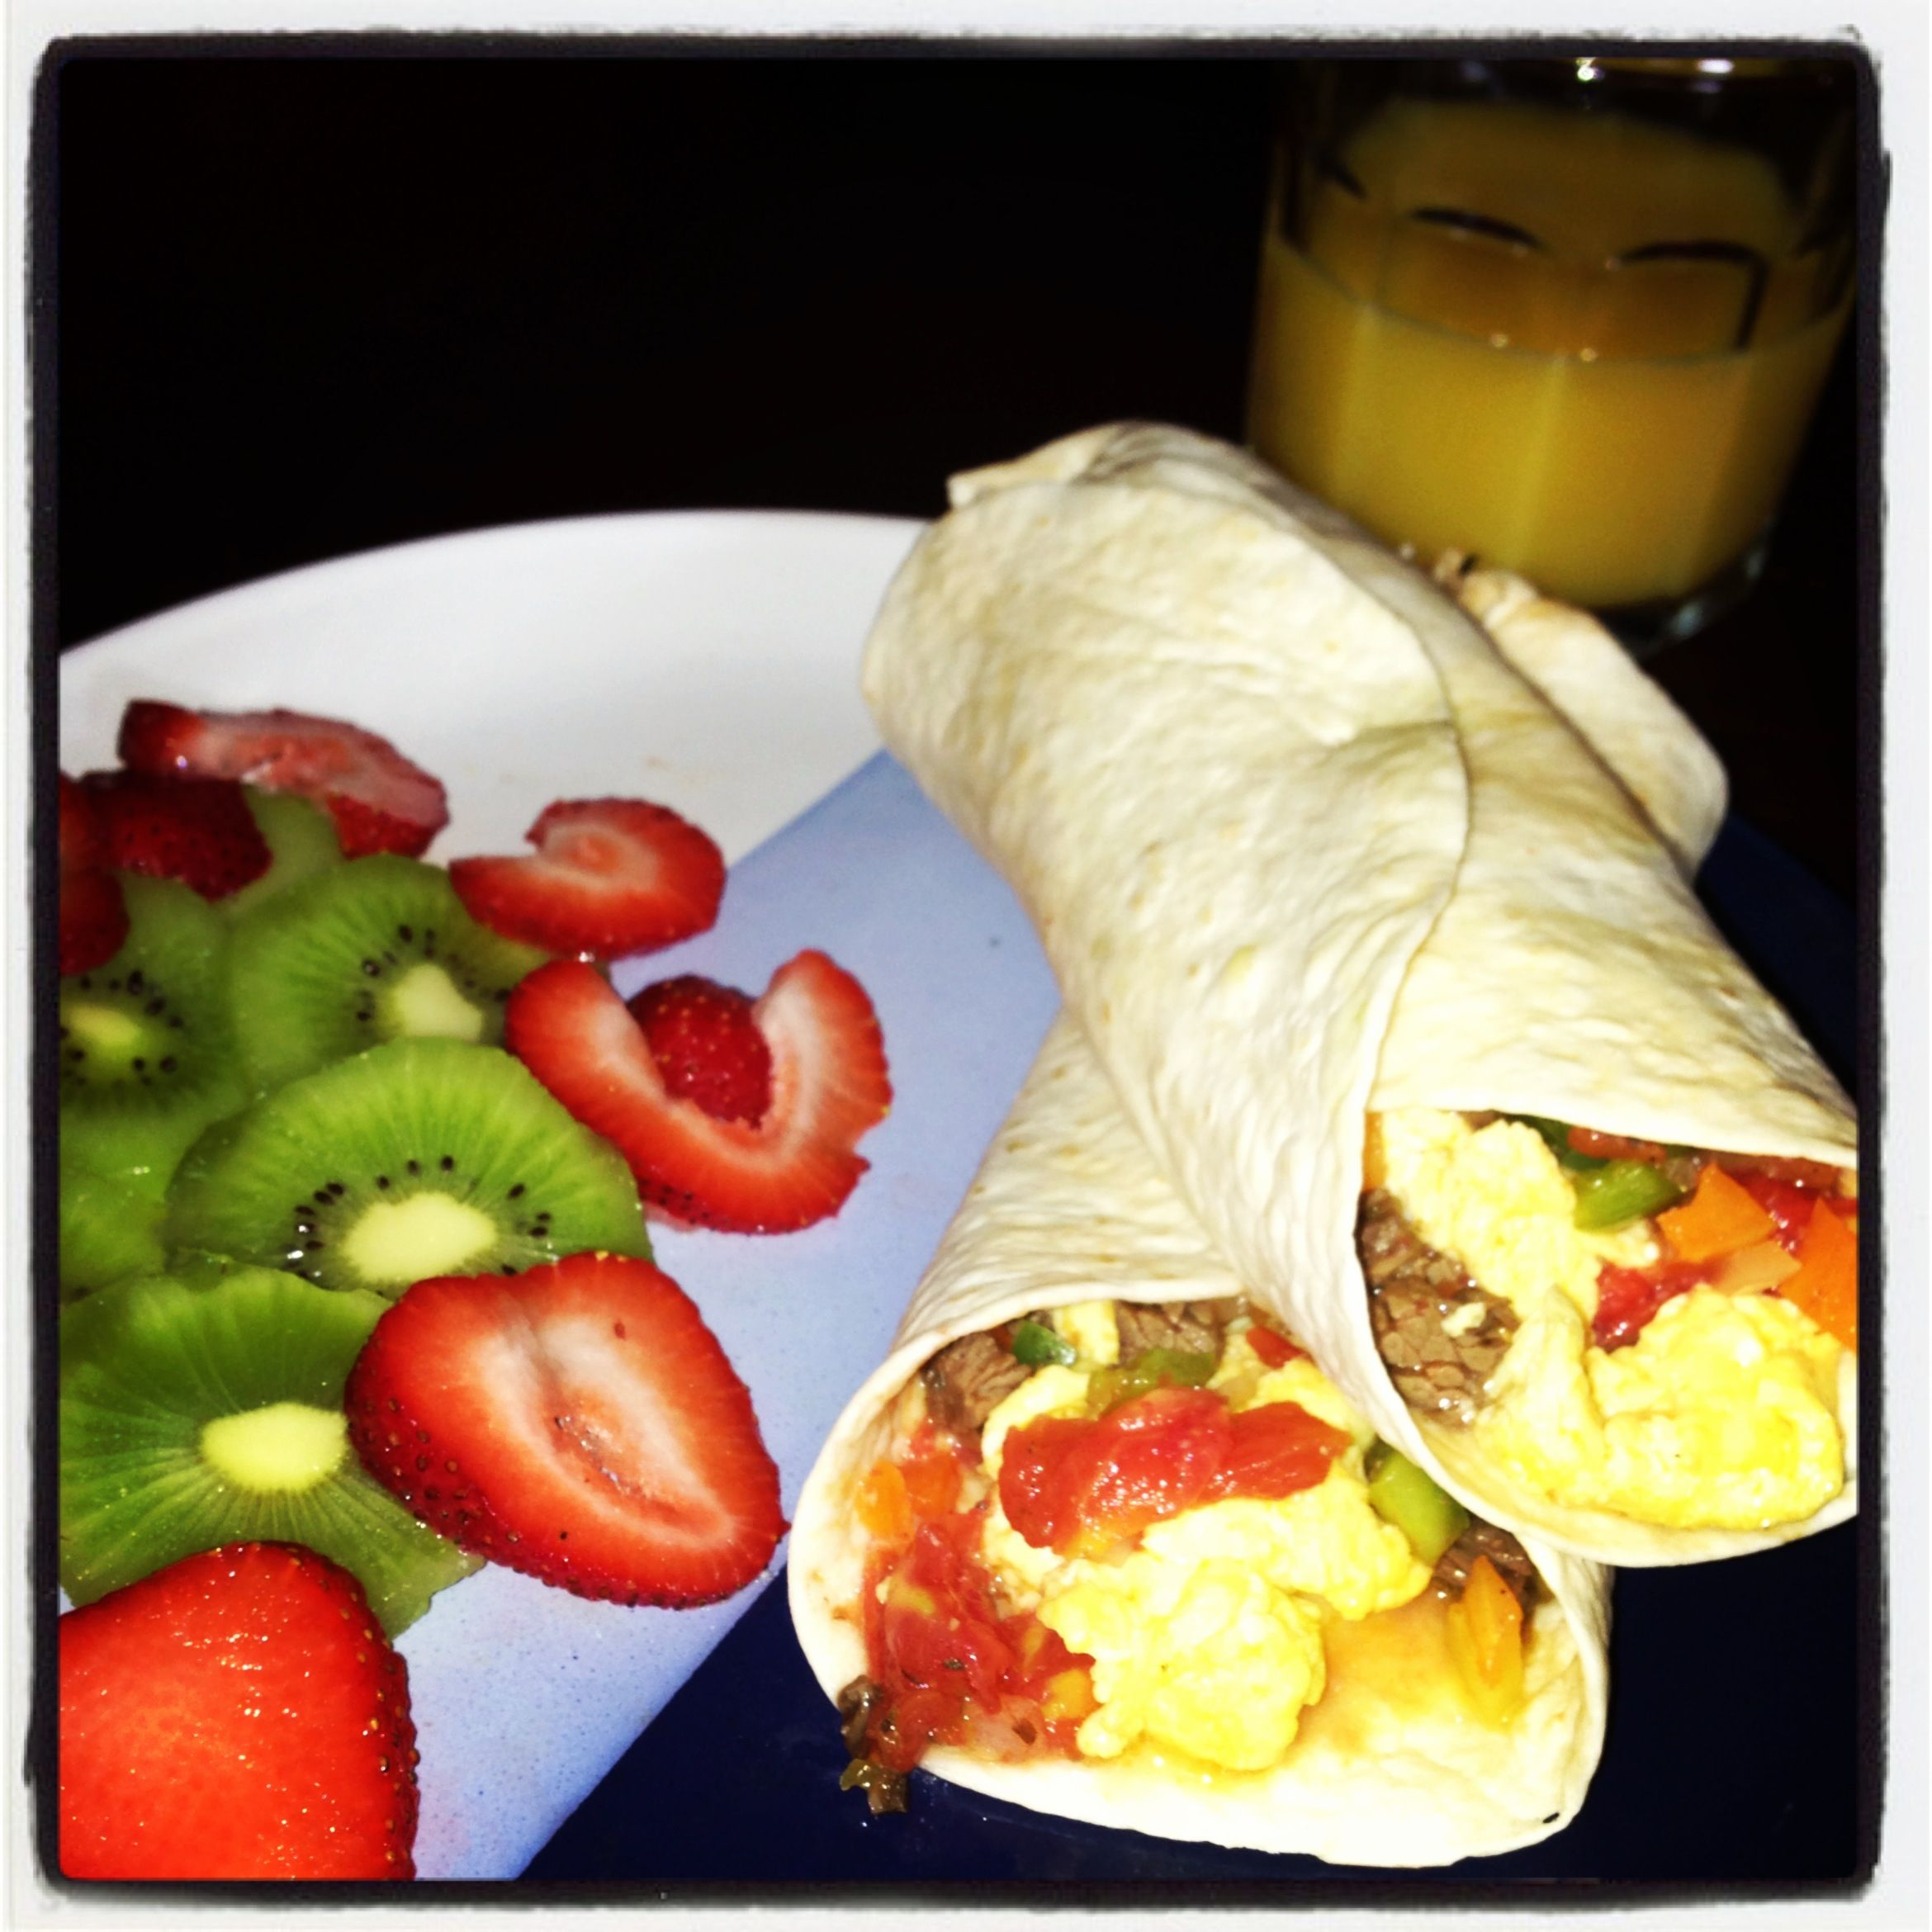 Breakfast burritos Burritos with scrambled eggs mixed with diced bell peppers, onions, tomato and steak! With a side of sliced kiwi and strawberries and oj to drink.